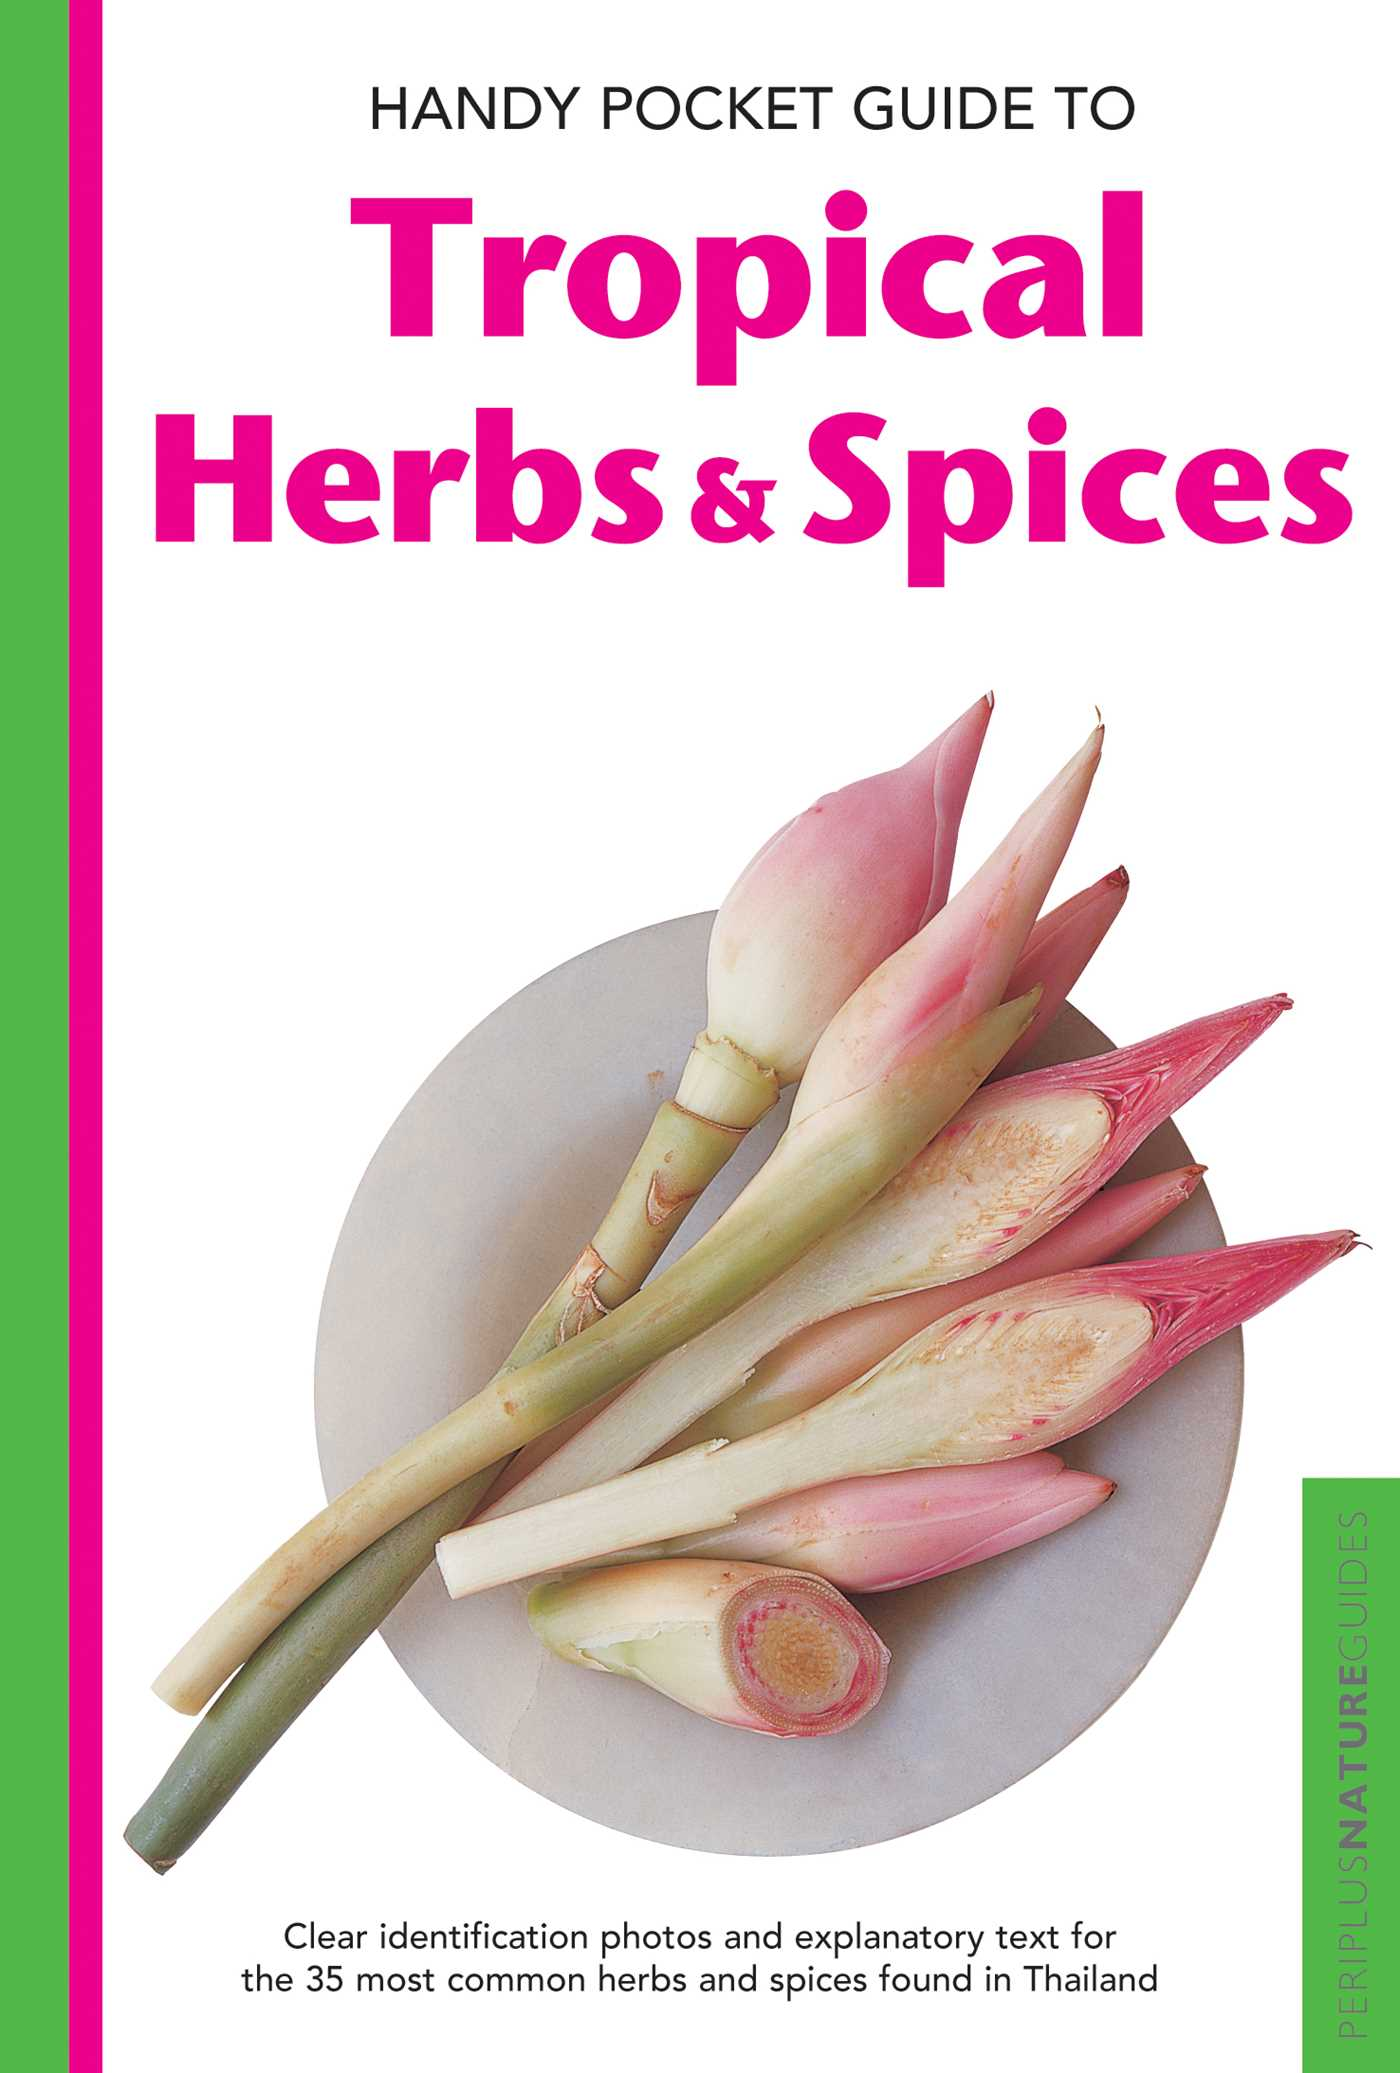 Handy pocket guide to tropical herbs spices 9780794606558 hr